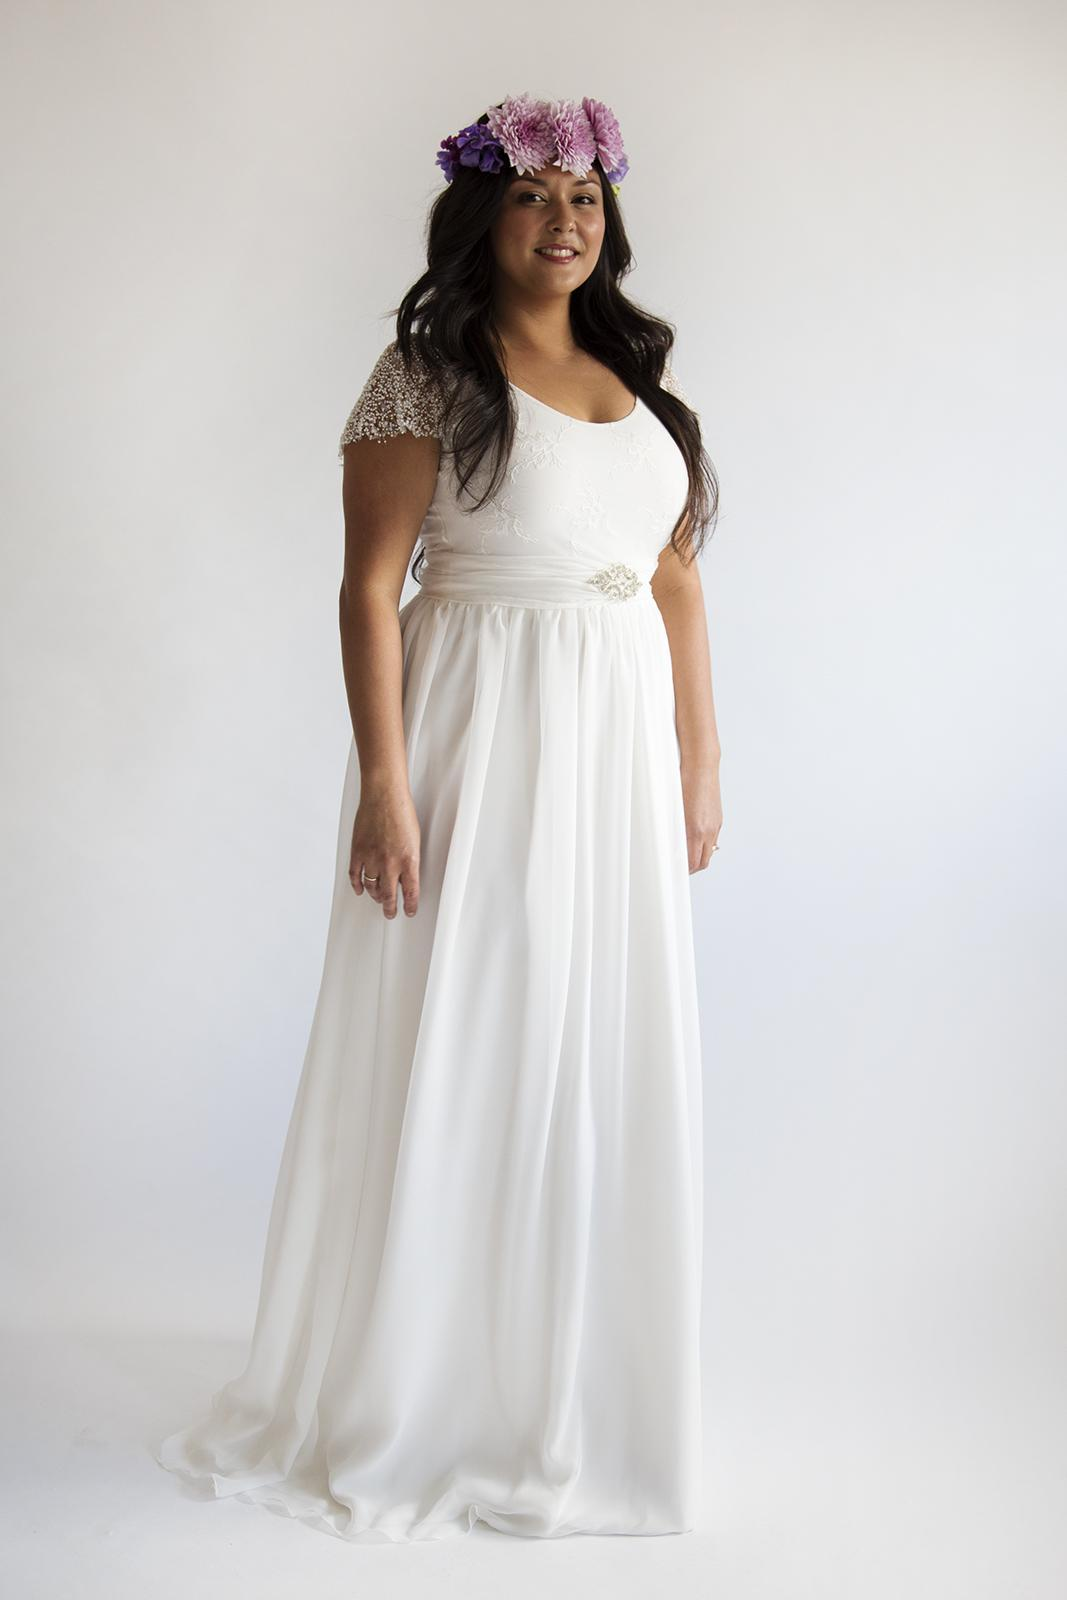 Plus Size Beach Wedding Dresses | wedding dresses cold climates